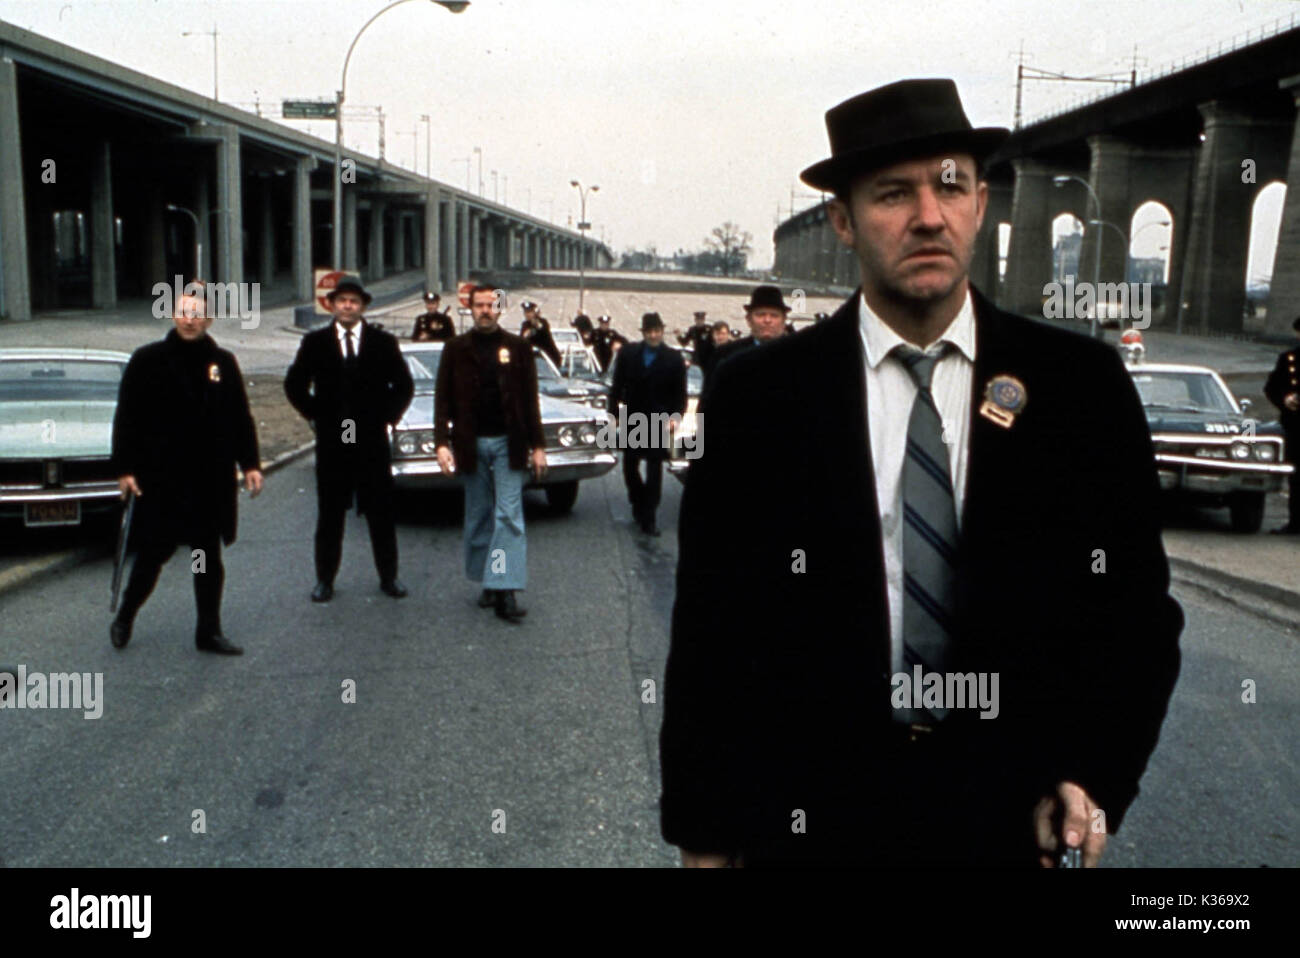 fcc9d7e15f6 FRENCH CONNECTION GENE HACKMAN Date: 1971 Stock Photo: 156876778 - Alamy